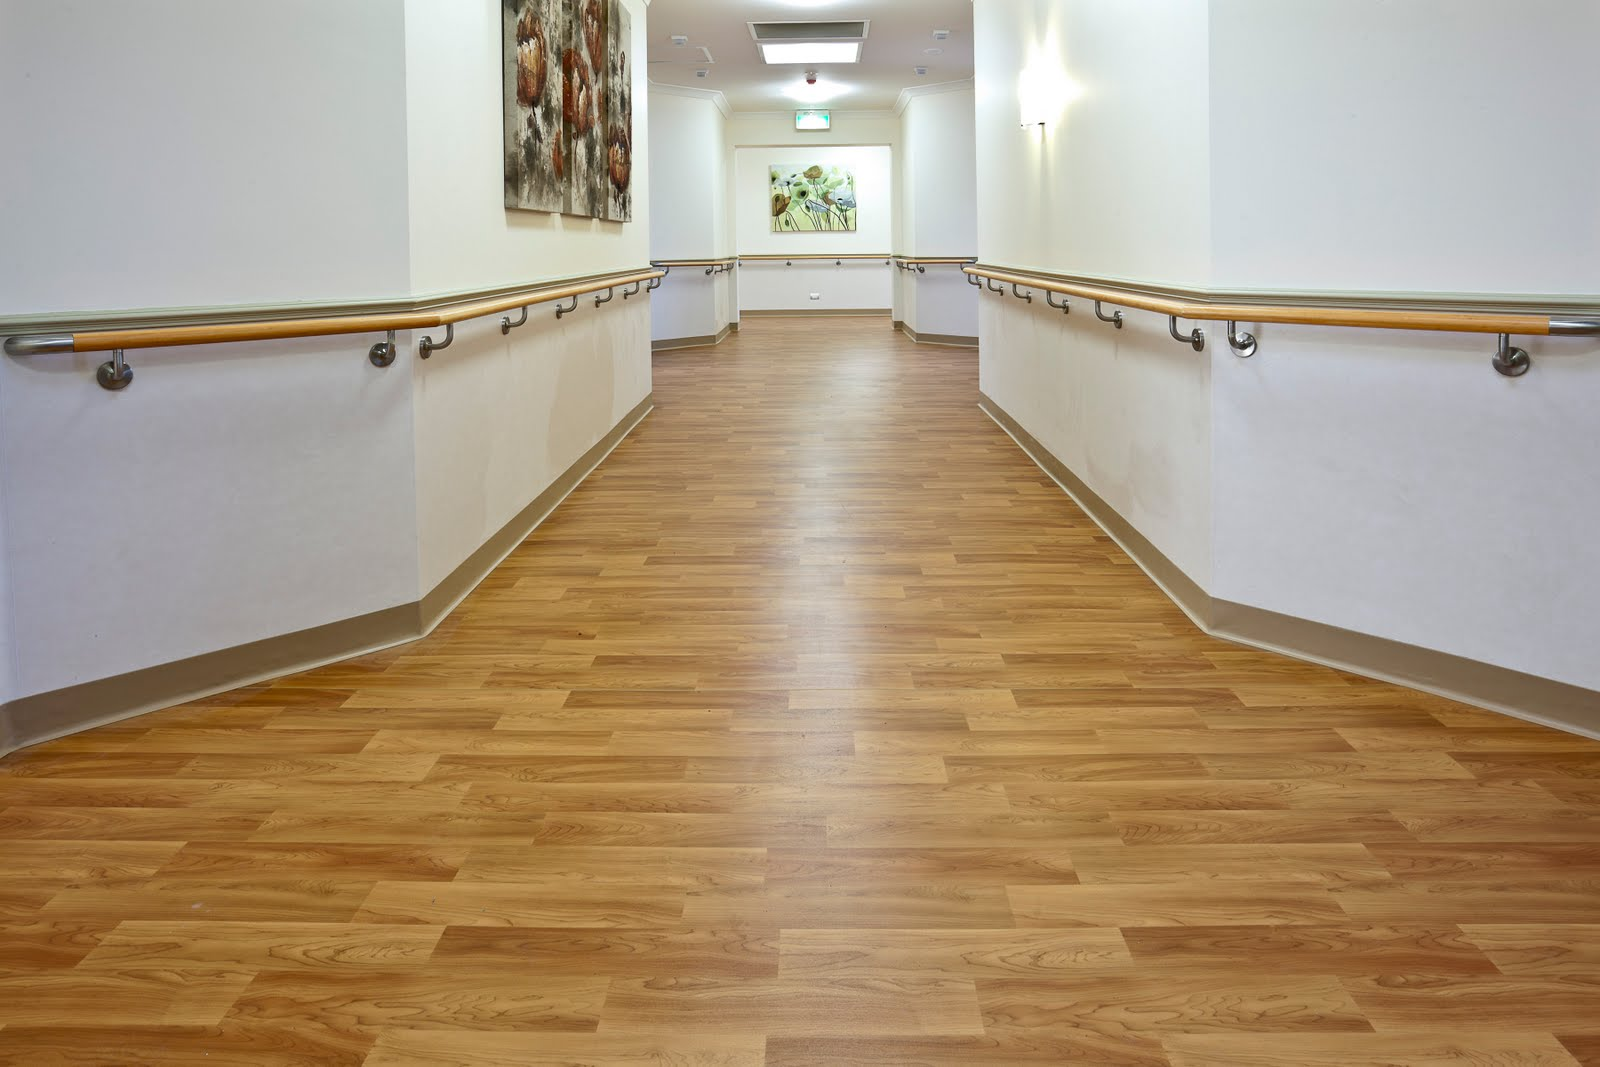 Hardwood Floors In Kitchen Pros And Cons Engineered Hardwood Flooring Pros Cons Install Cost